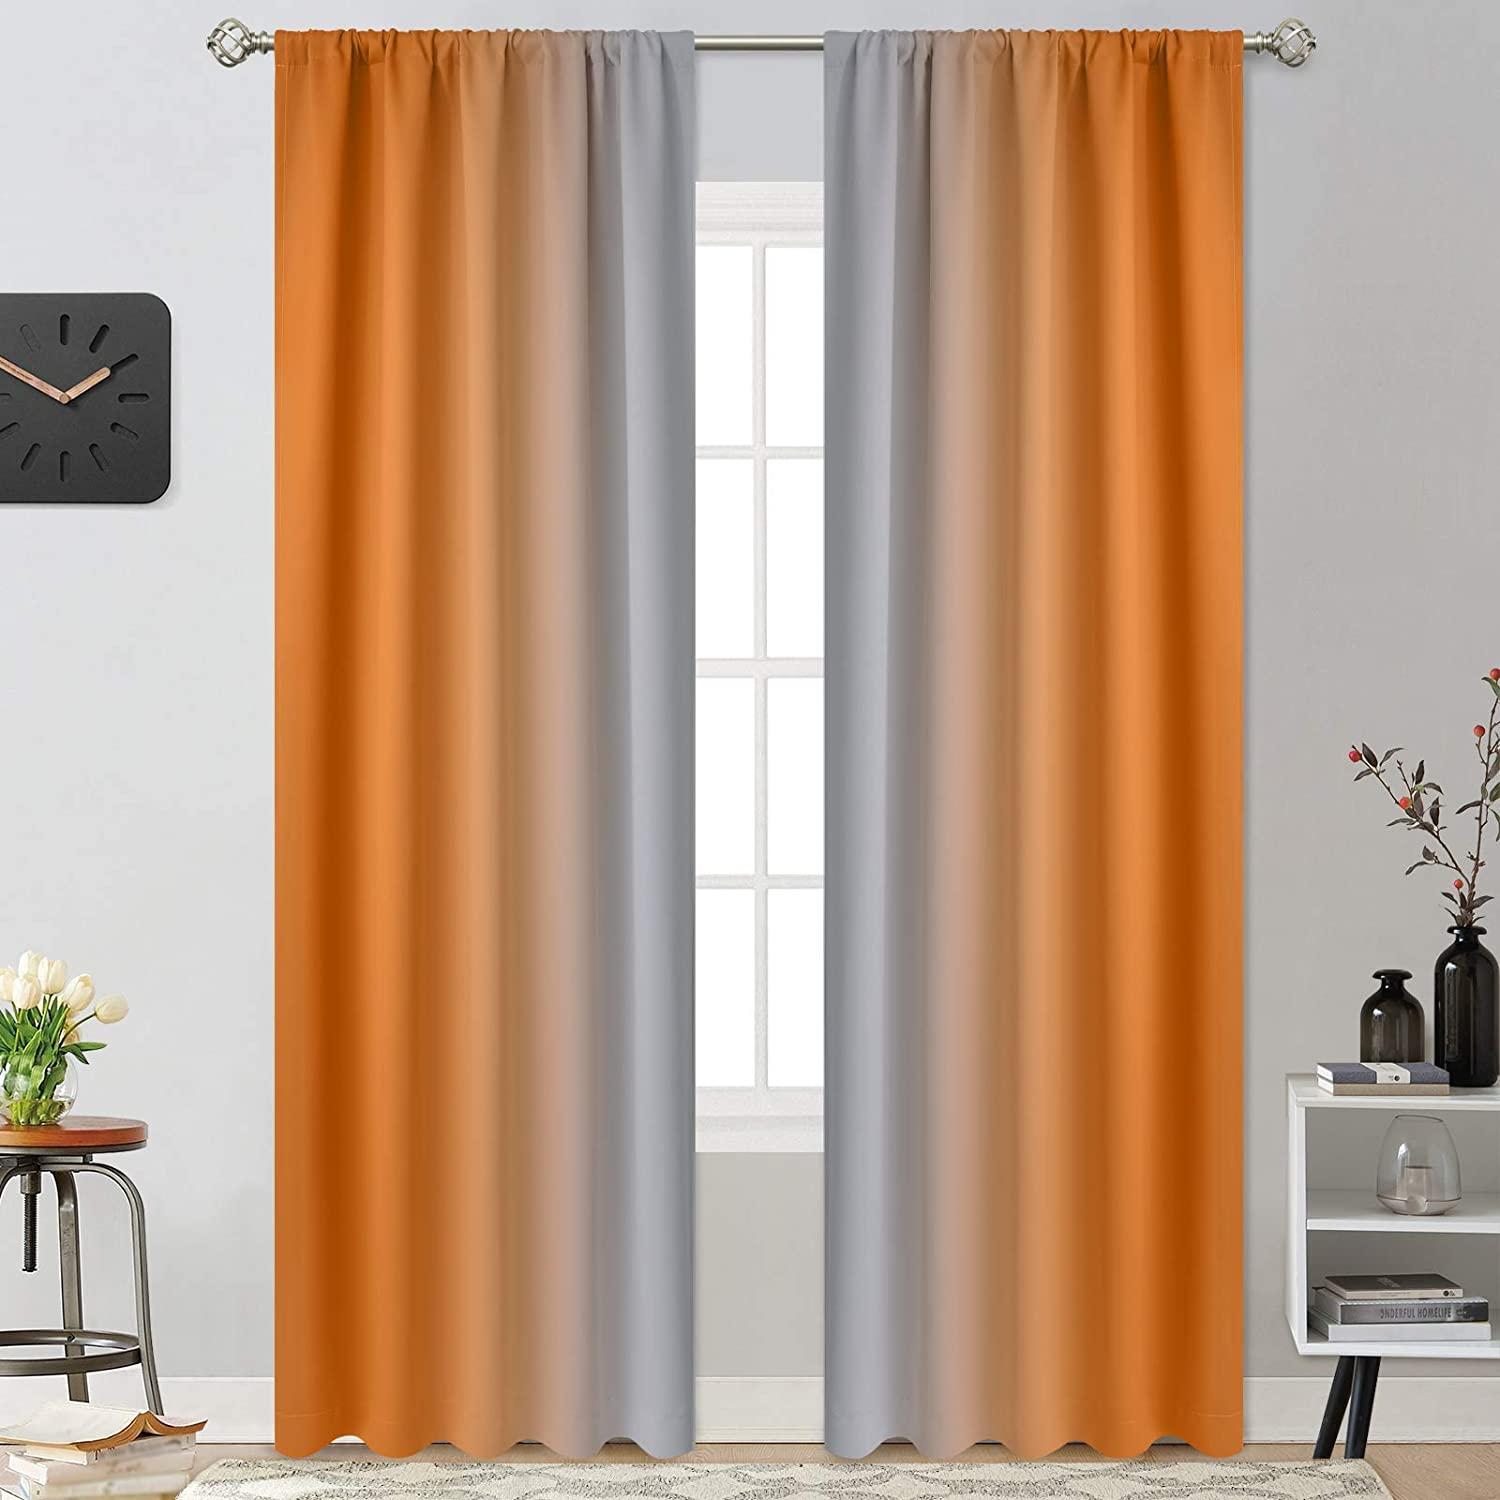 Yakamok Room Price reduction Darkening Excellence Gradient Color Curtains Thickening Ombre